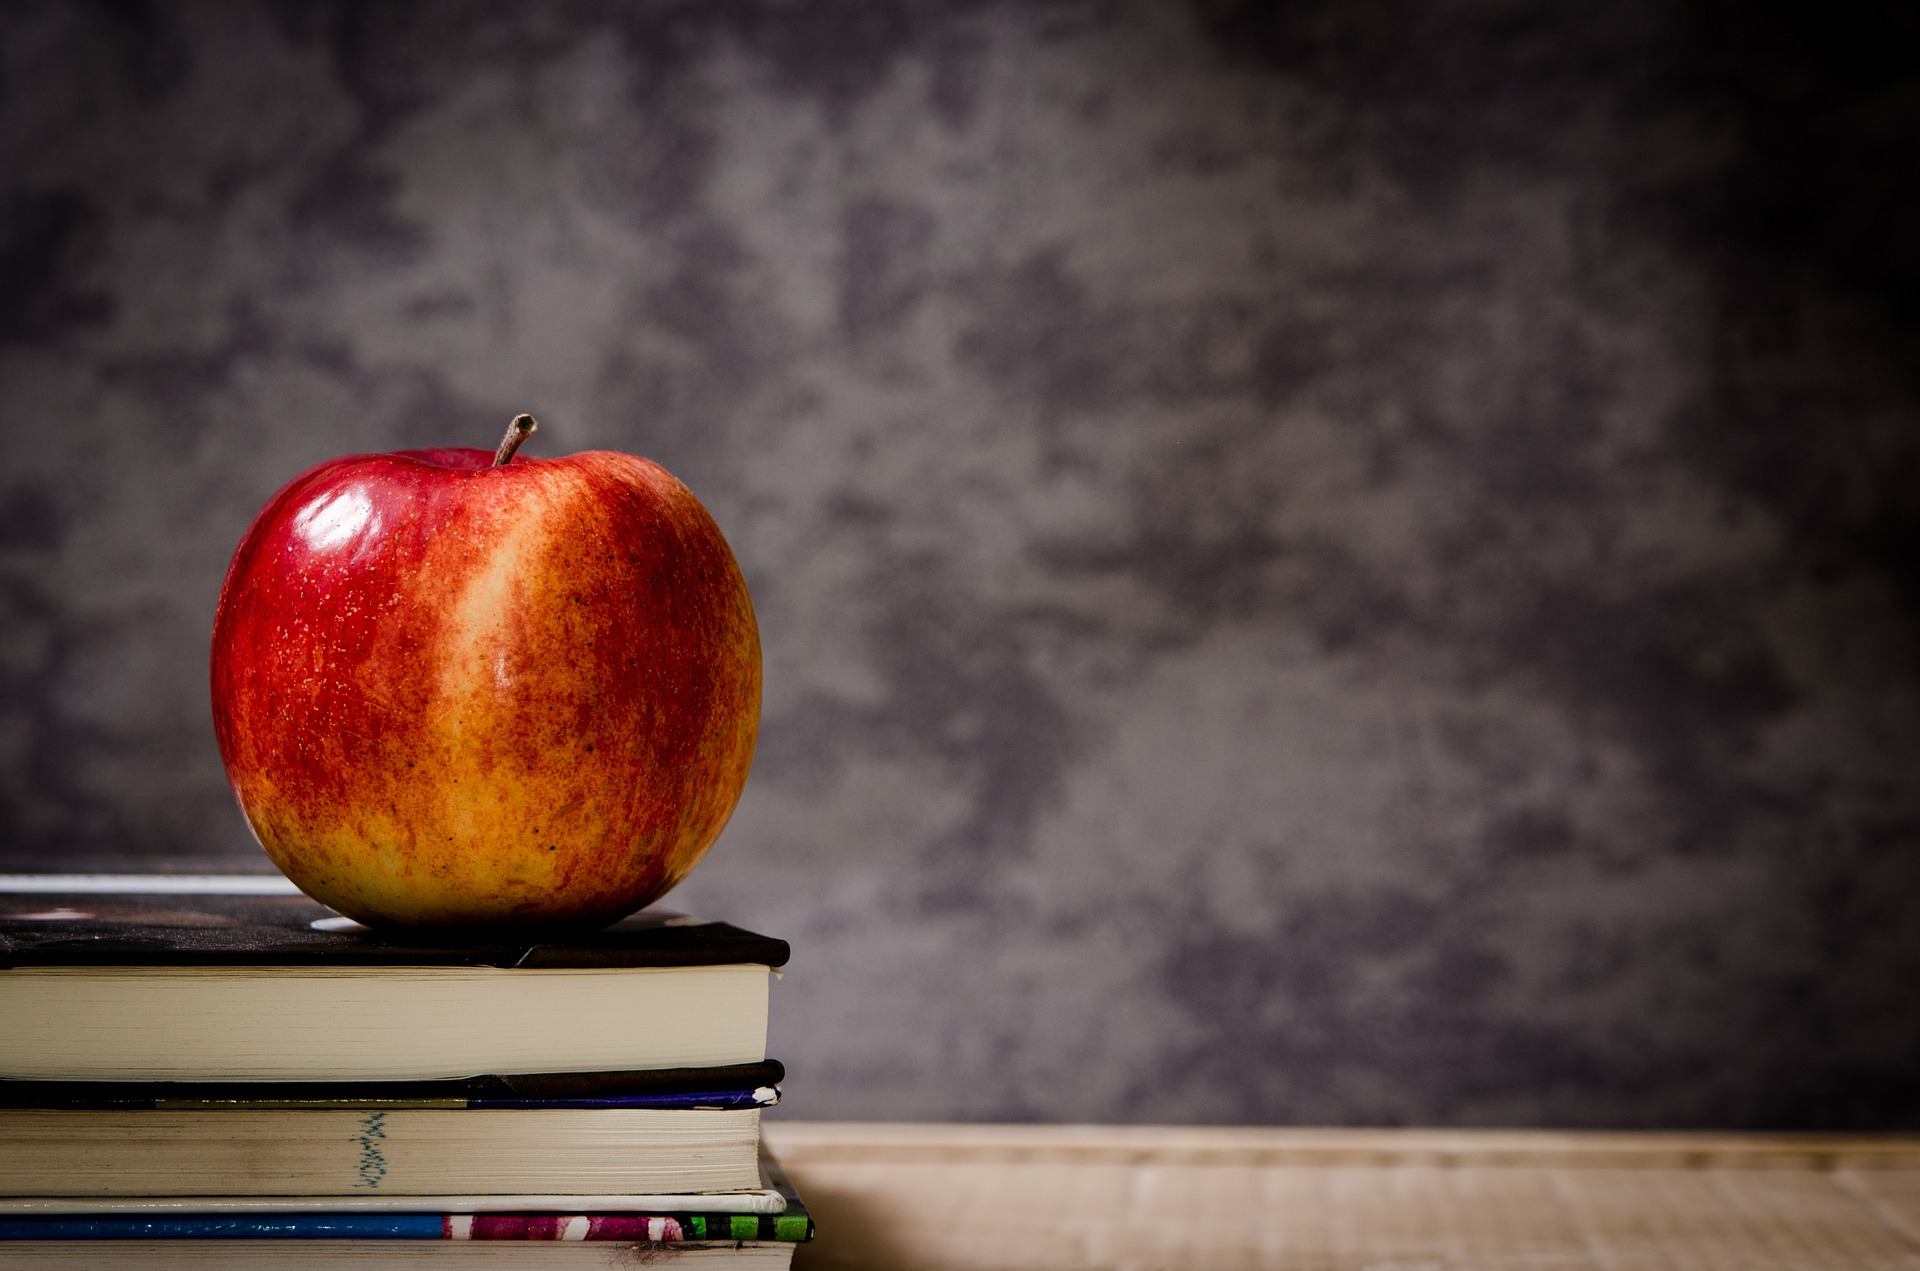 An apple on a pile of school books